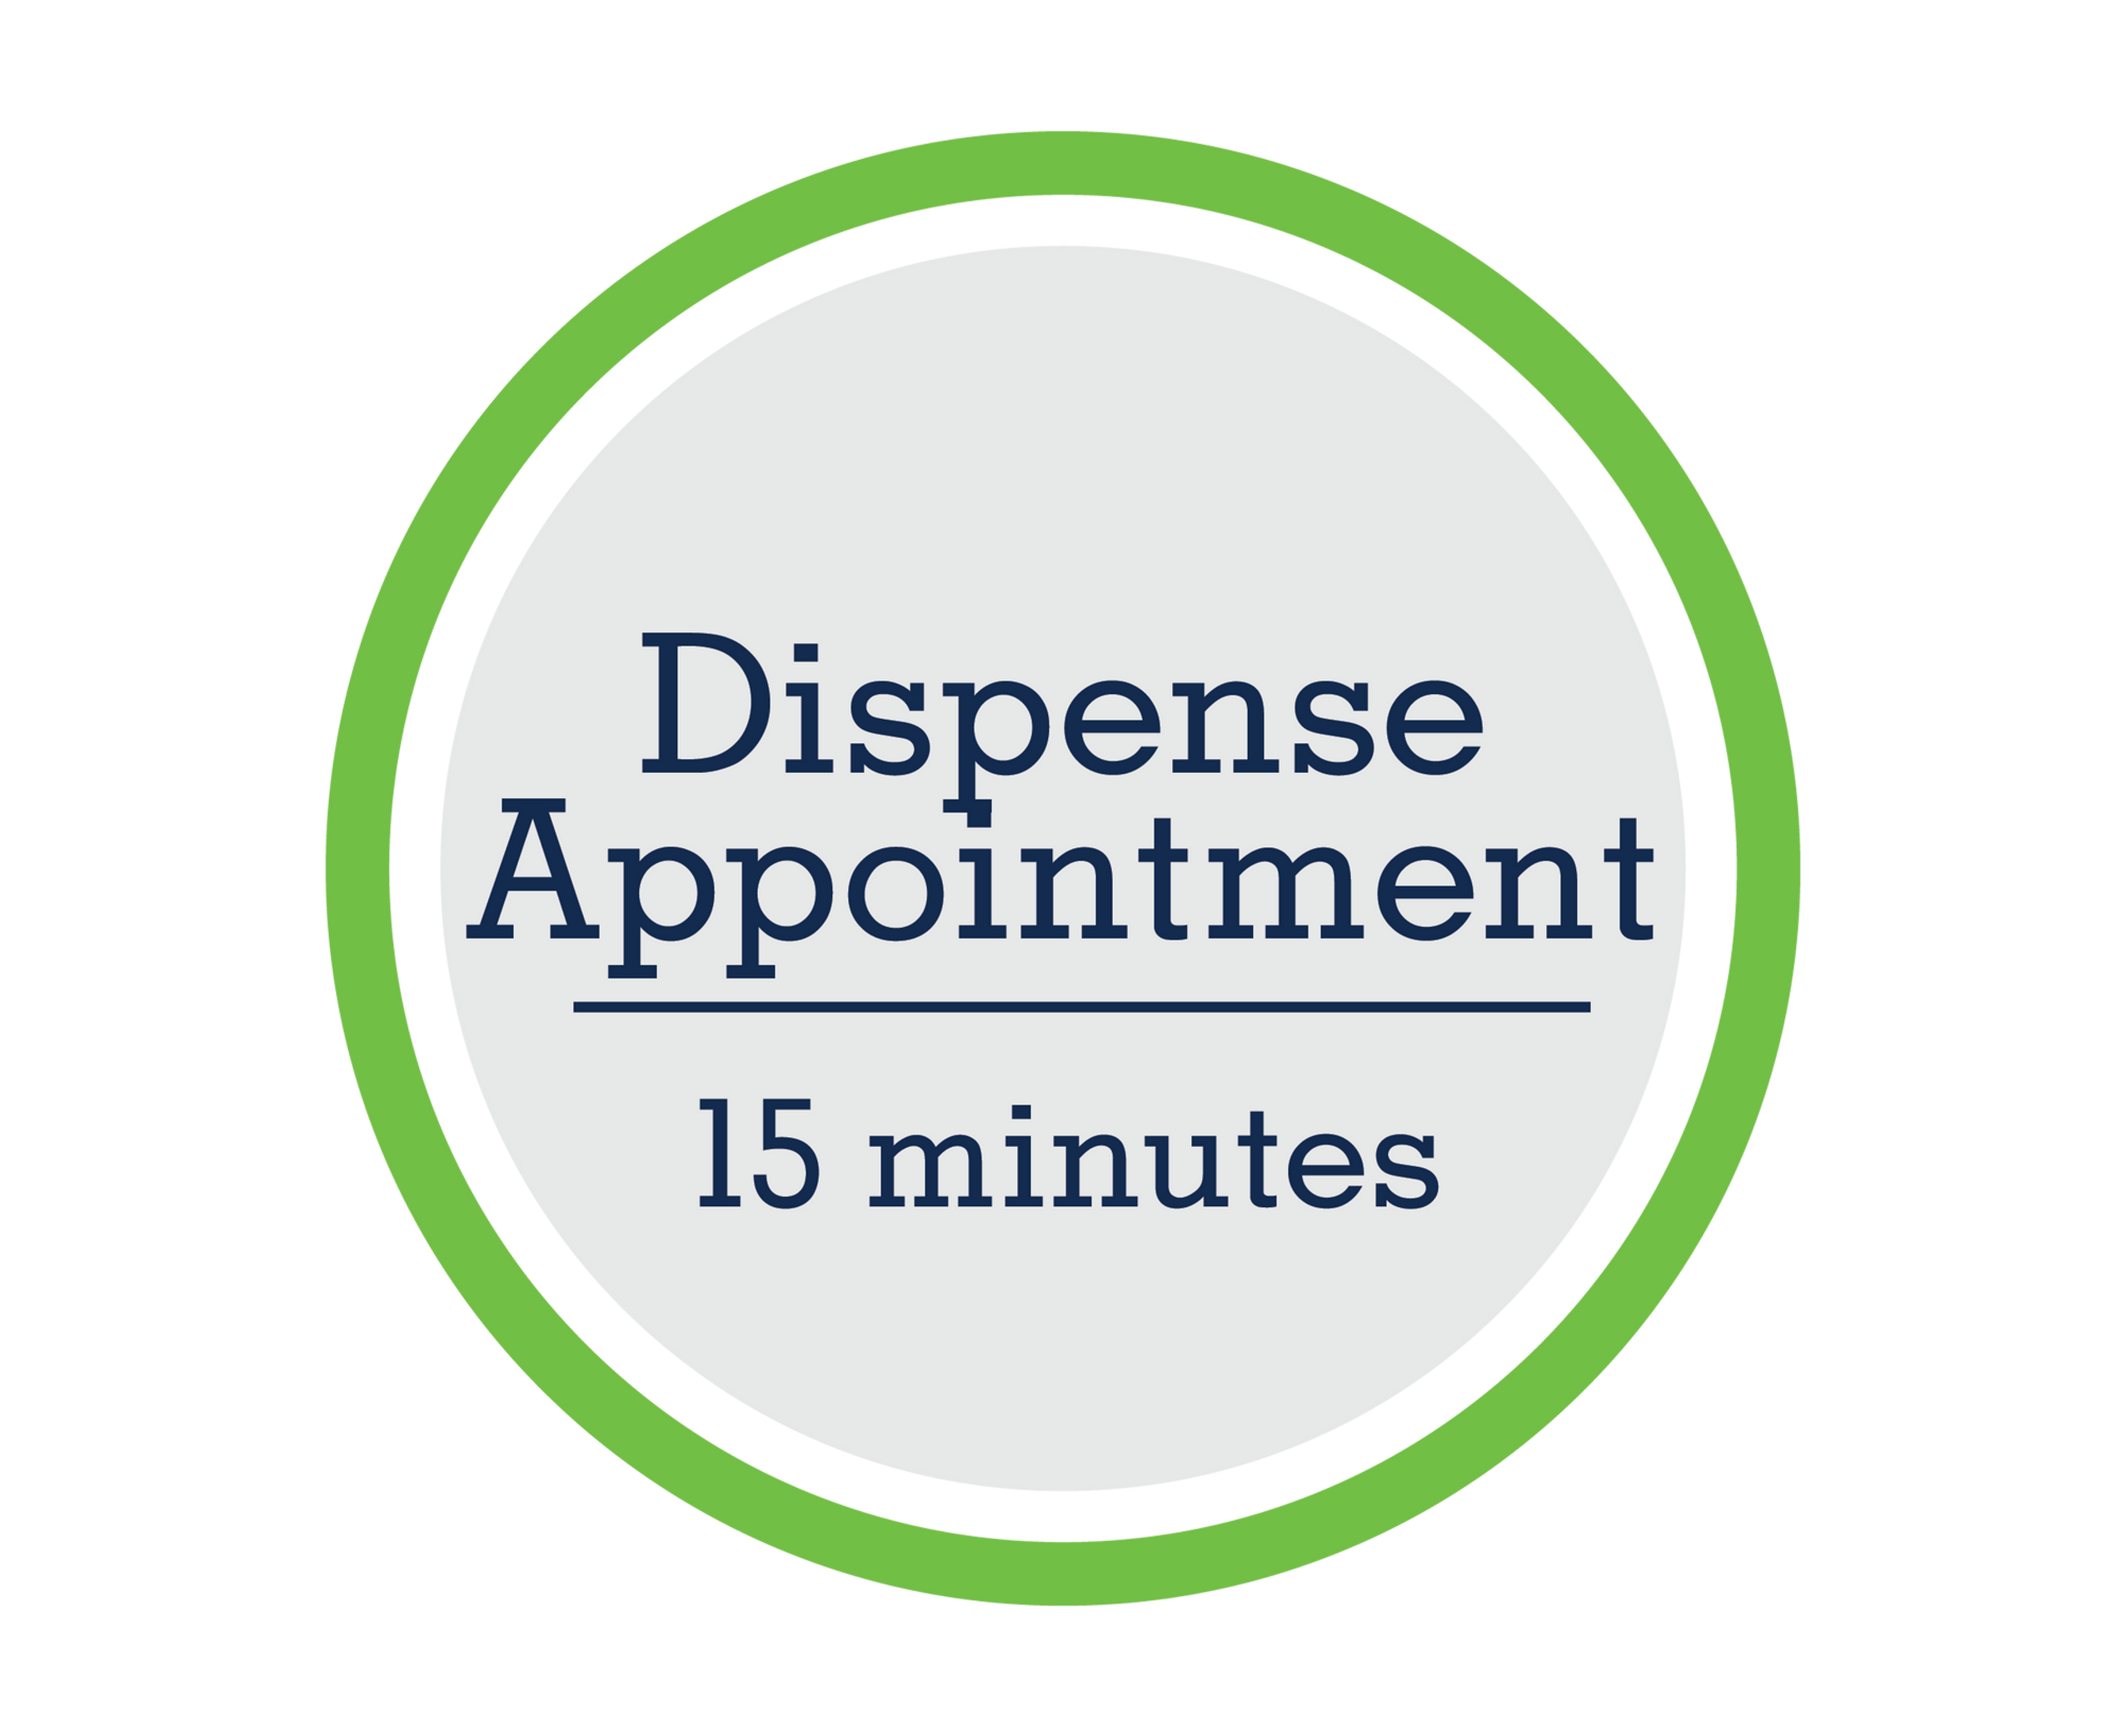 Dispense Appointment